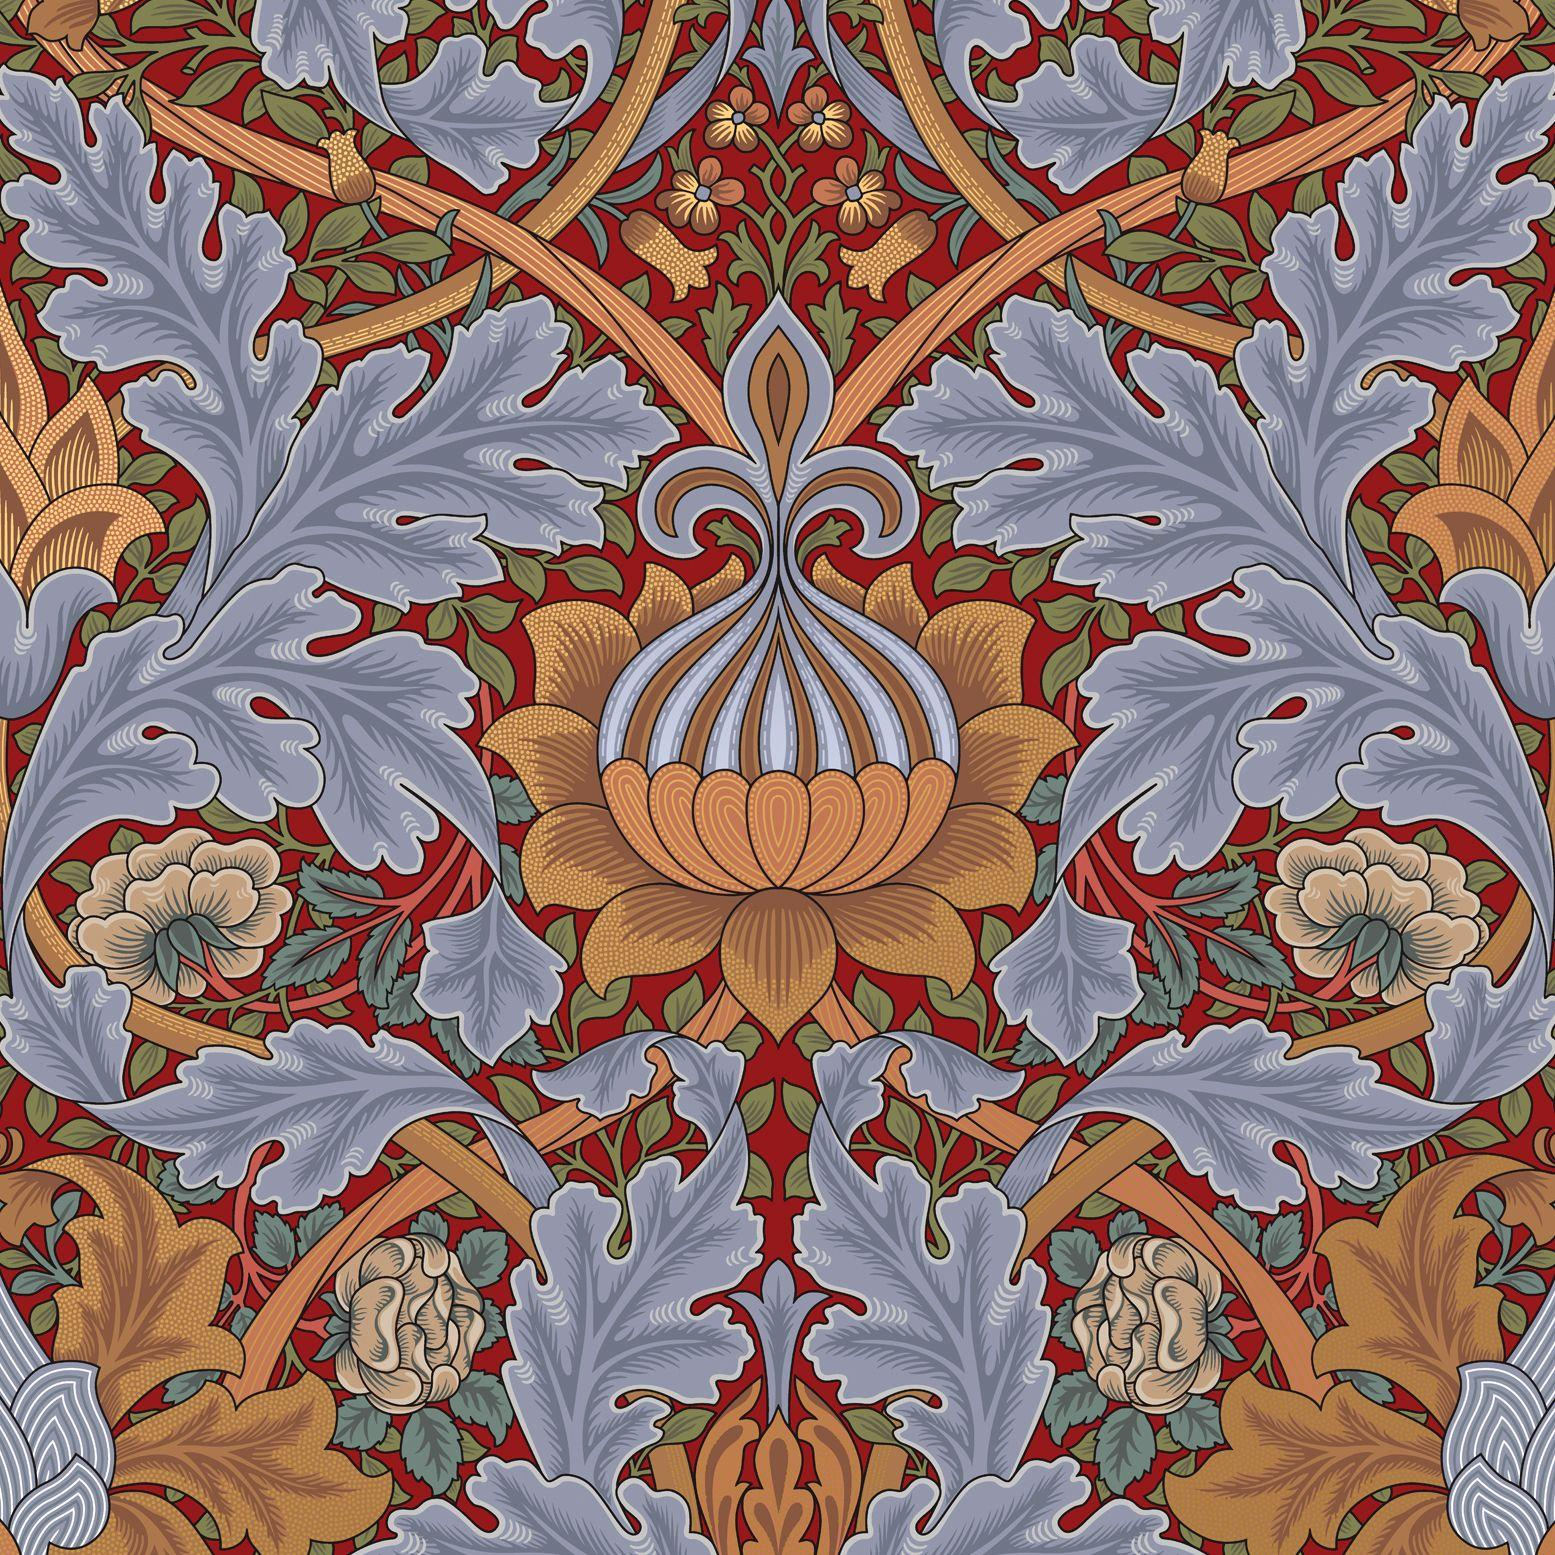 The Great Wallpapers Rebellion: Defending Flamboyance in a